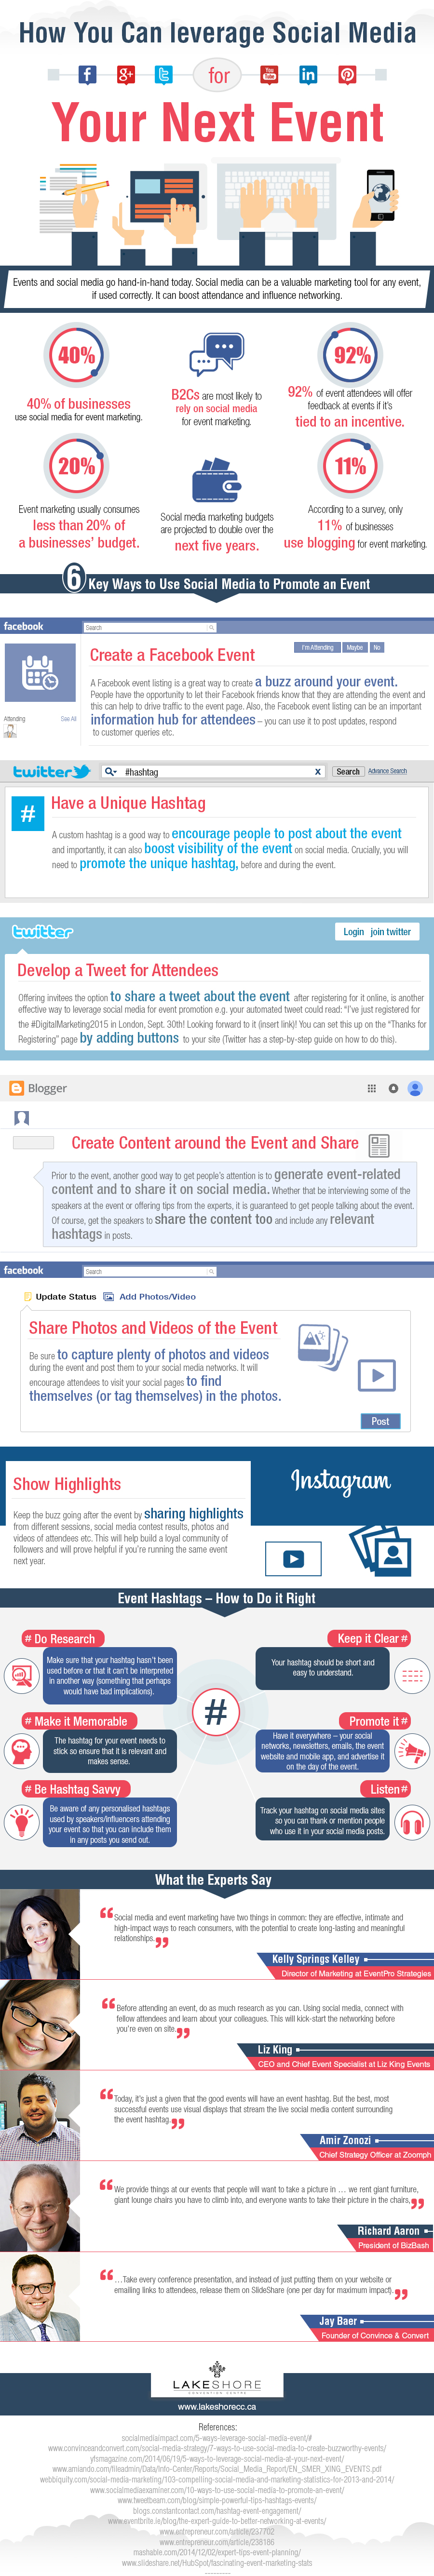 """How you can leverage social media at your next event"" By Tom Pick via www.business2community.com/"